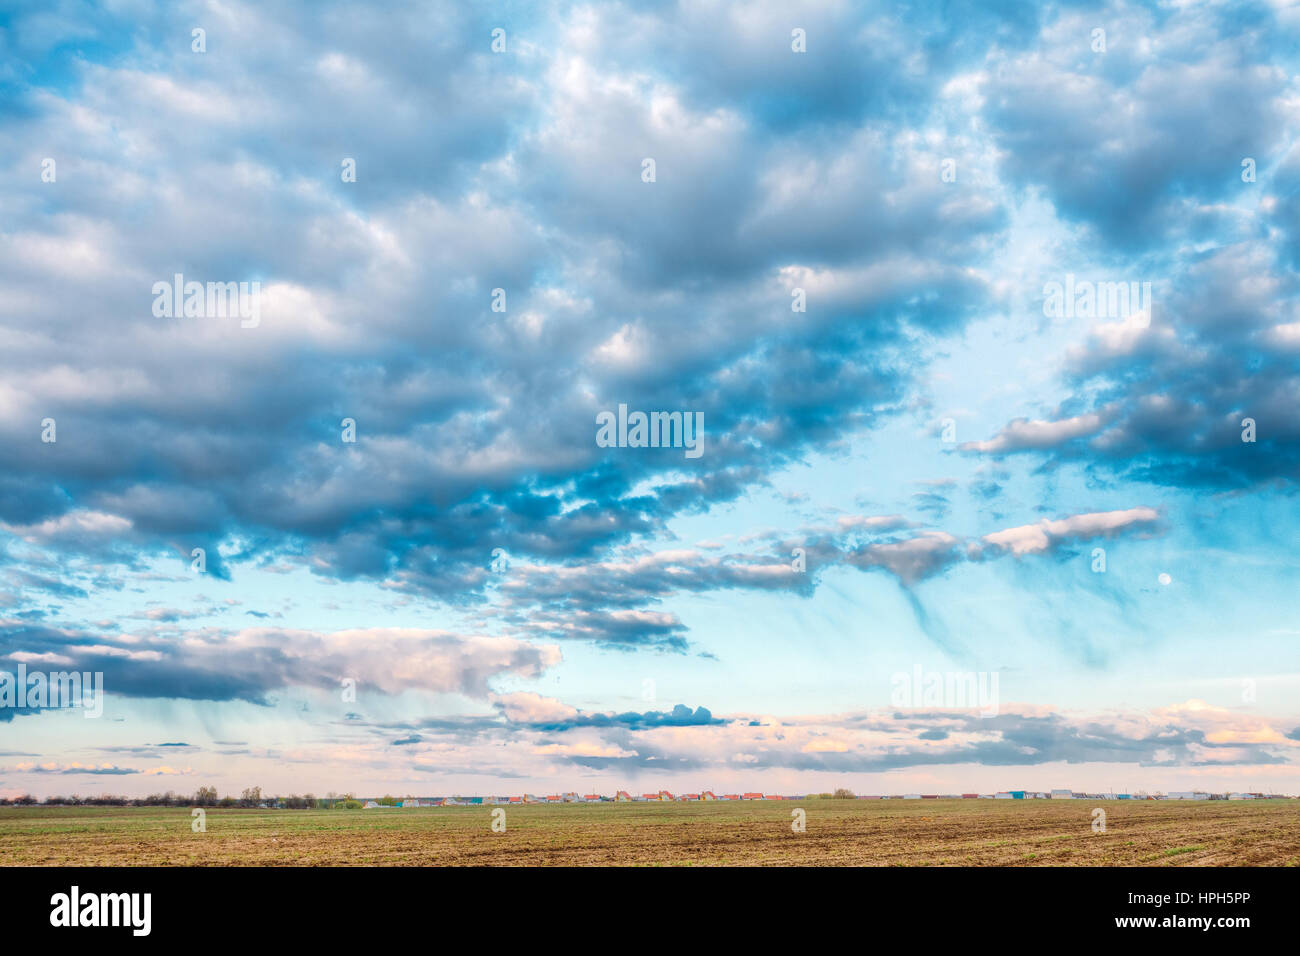 Countryside Rural Field Landscape Under Scenic Spring Blue Dramatic Sky With White Fluffy Clouds. Skyline. Agricultural - Stock Image